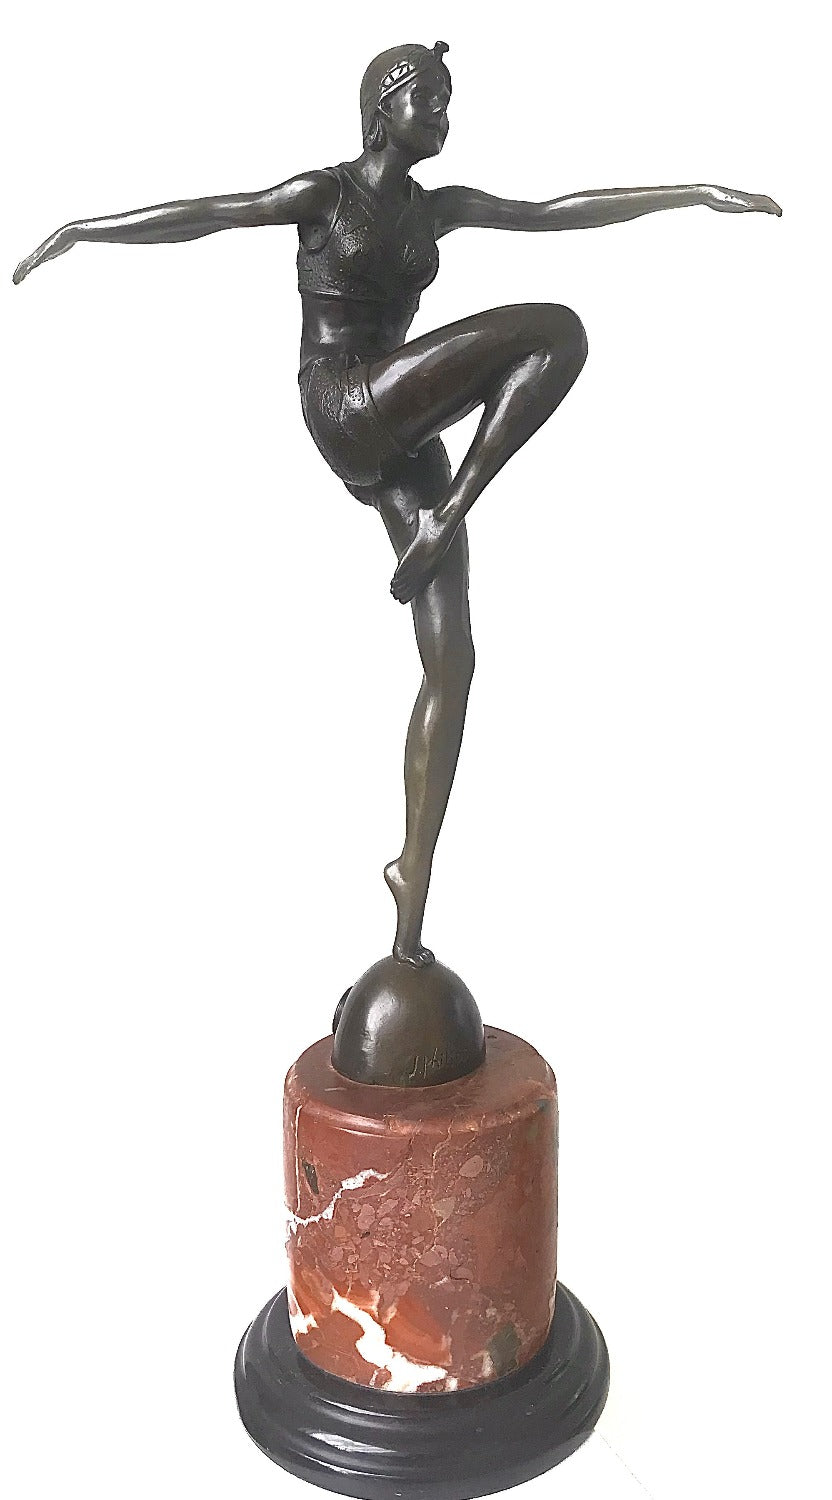 Art Deco bronze statue of a 1920's dancing girl